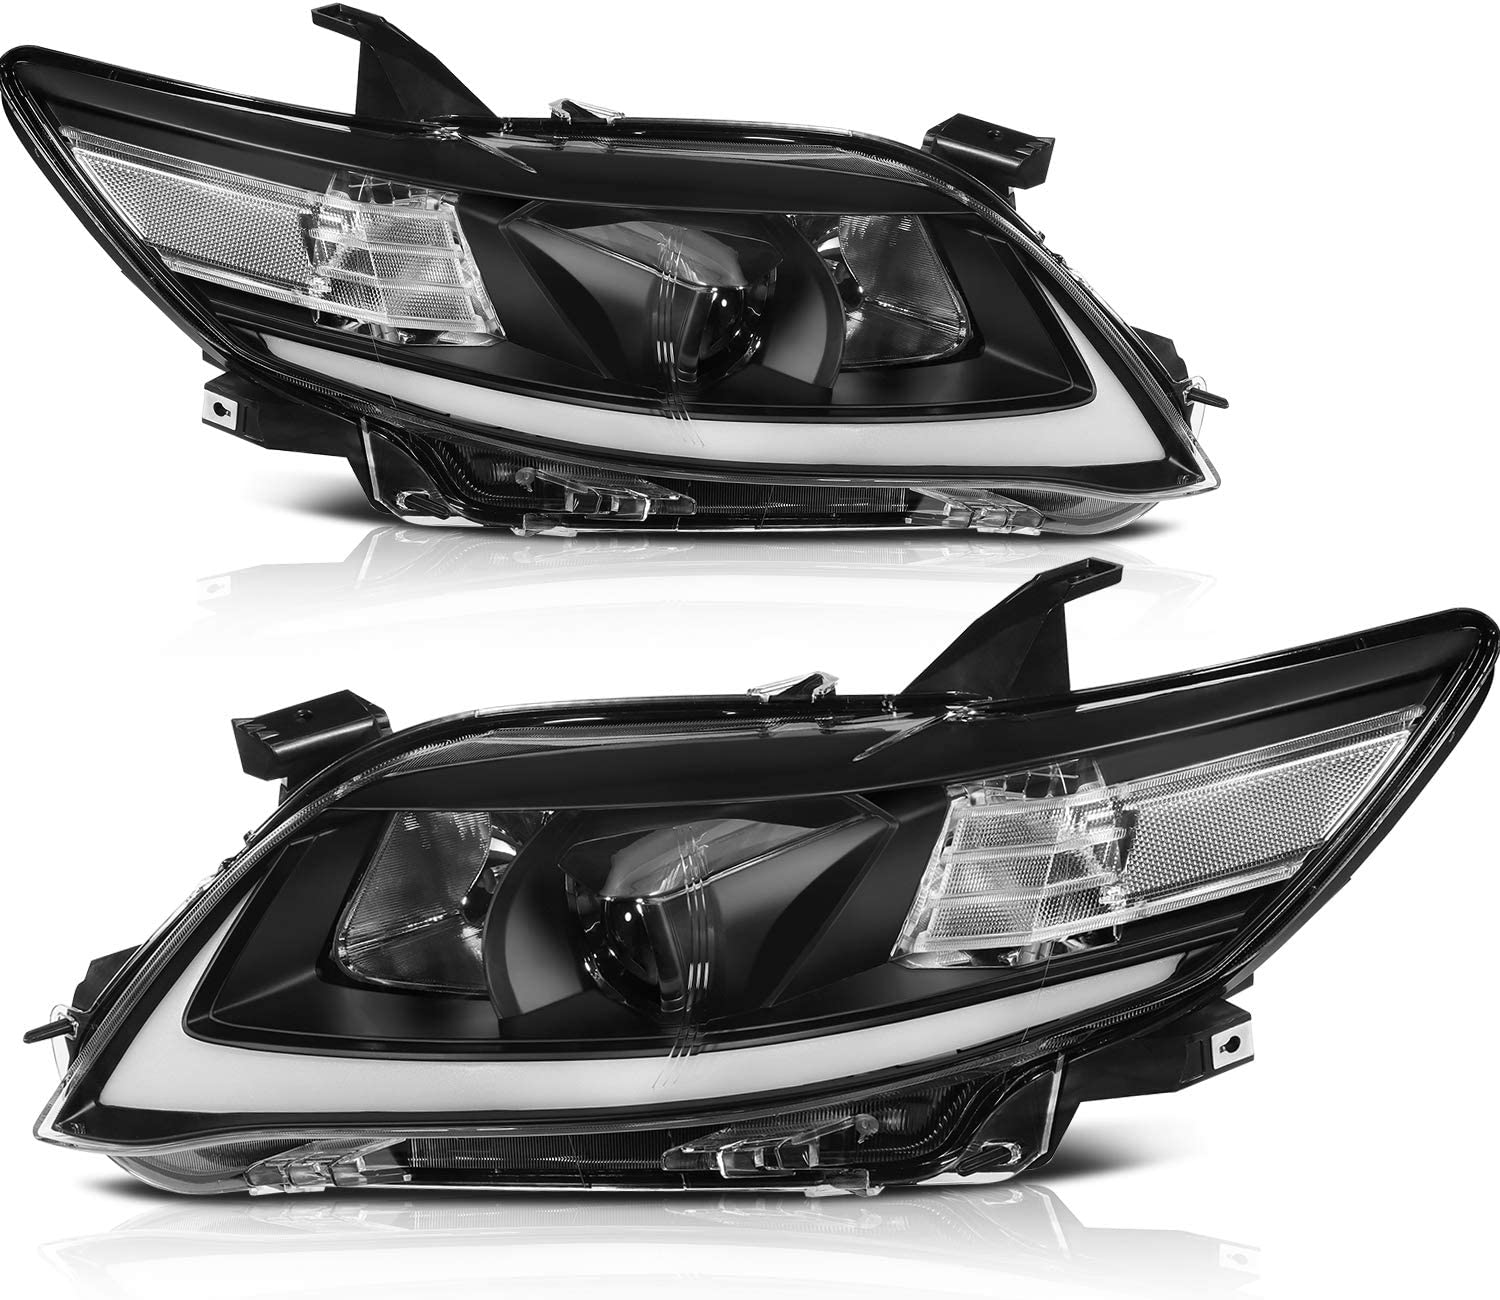 cciyu Headlight Assembly fit for Max 78% OFF TOYOTA Camry 2011 Be super welcome Dri 2010